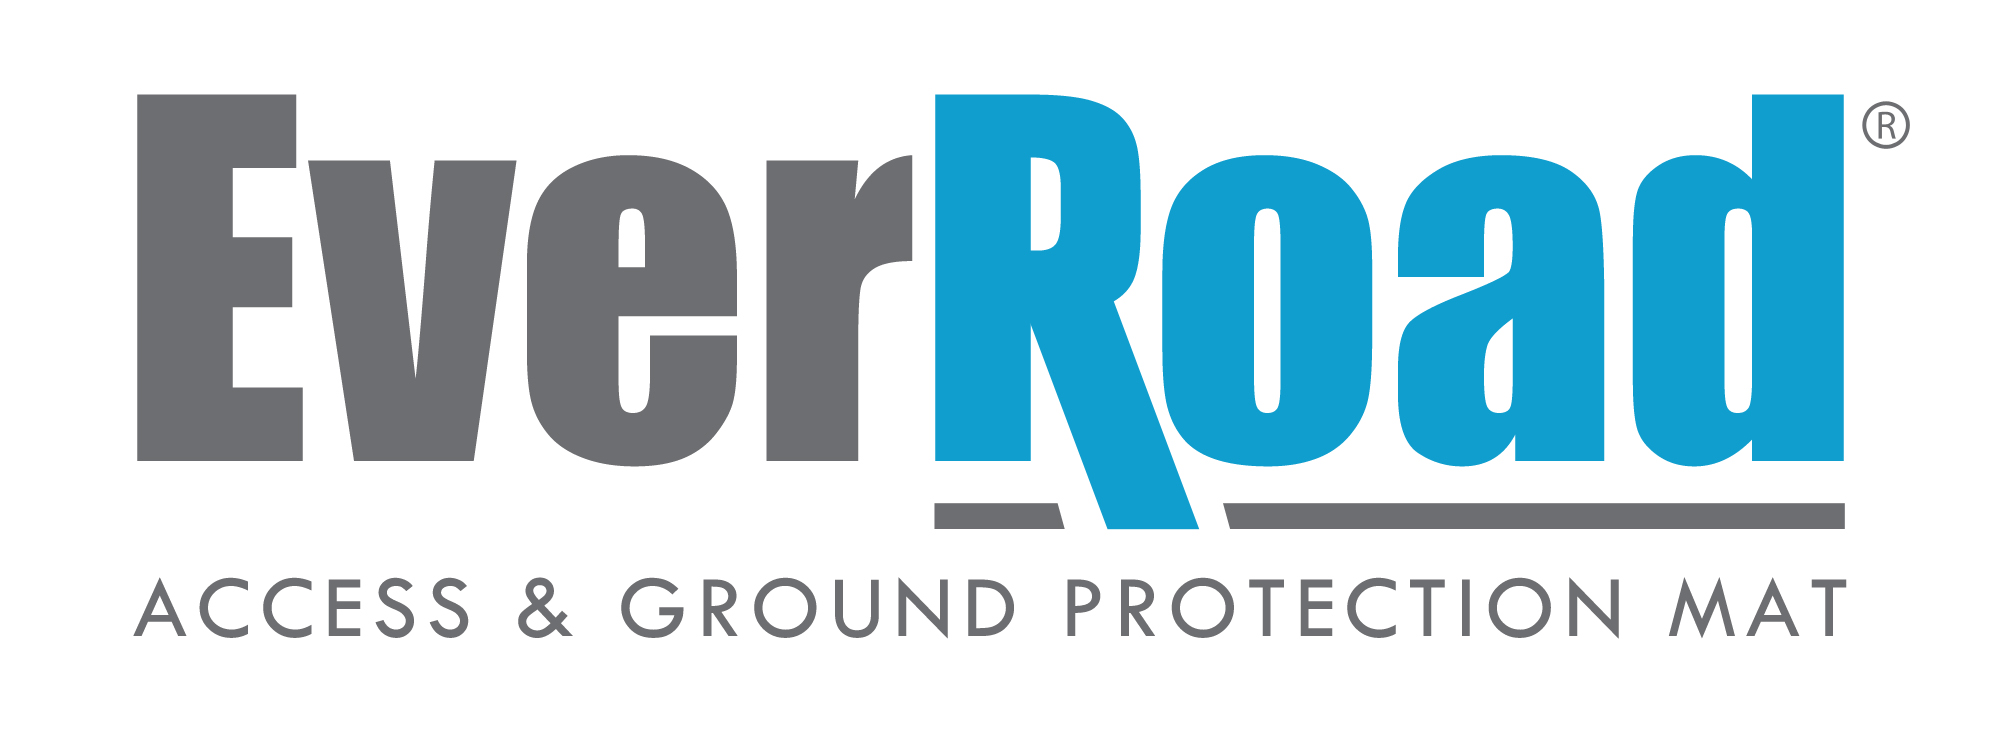 EverRoad ground protection mat